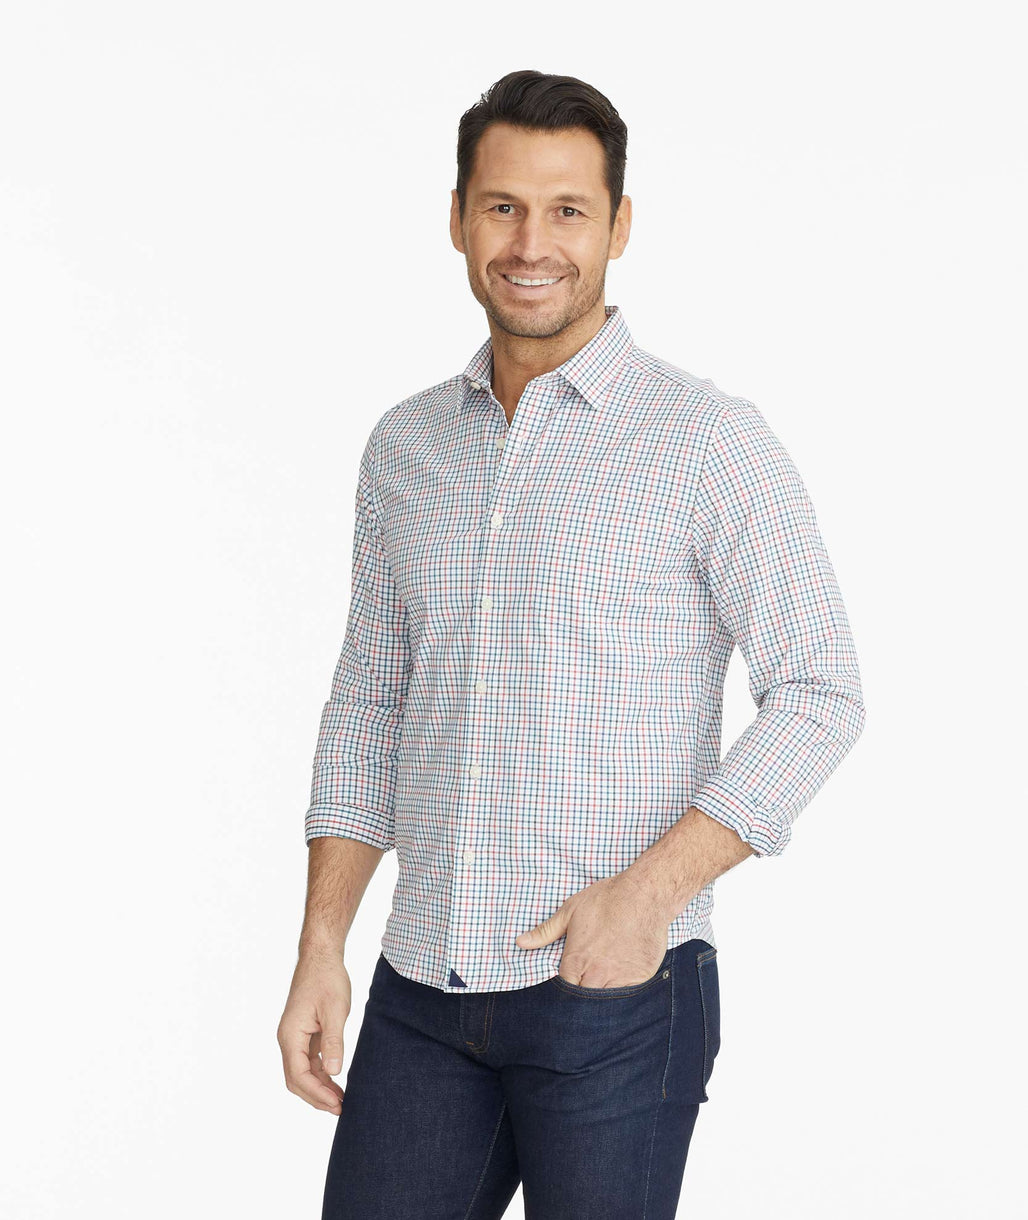 Model wearing a Red Wrinkle-Free Performance Sattler Shirt